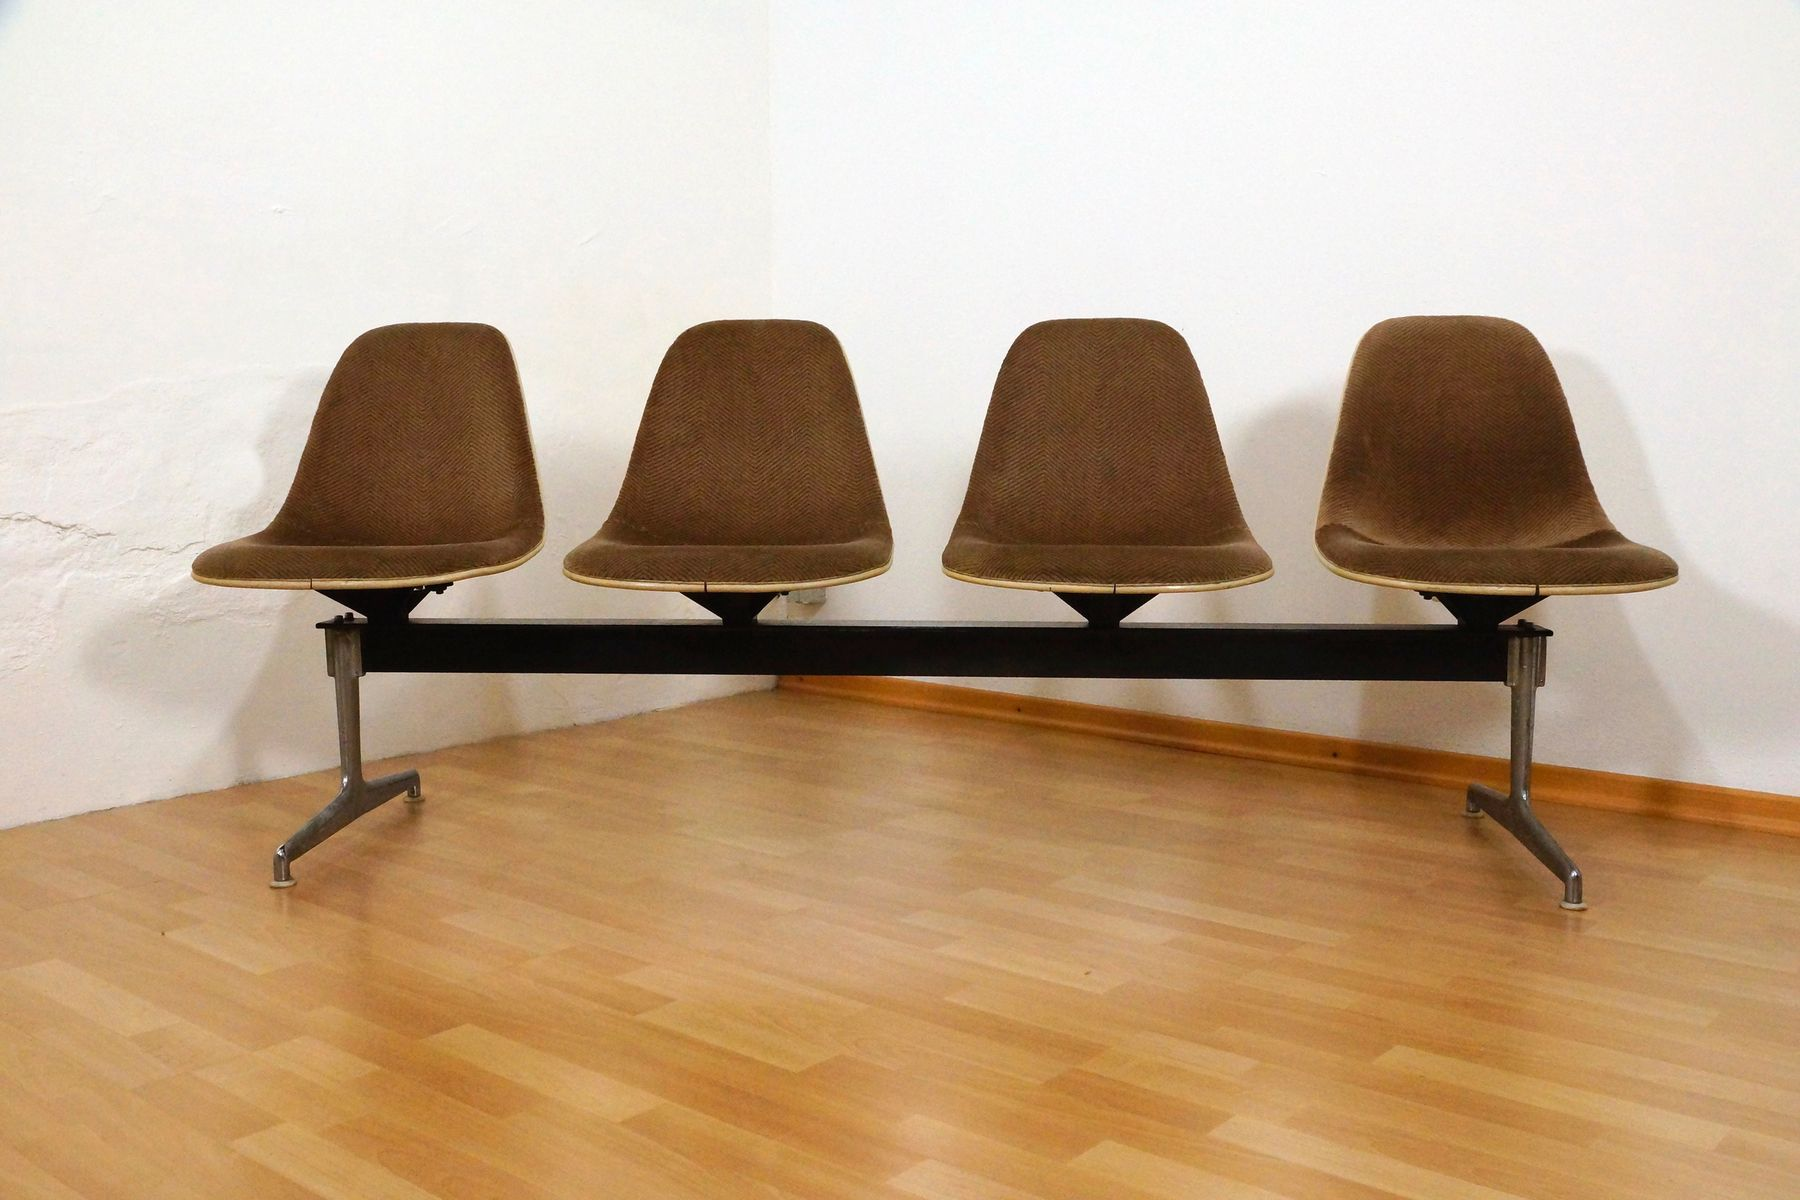 Tandem Bench By Charles Ray Eames For Herman Miller 1964 For Sale At Pamono